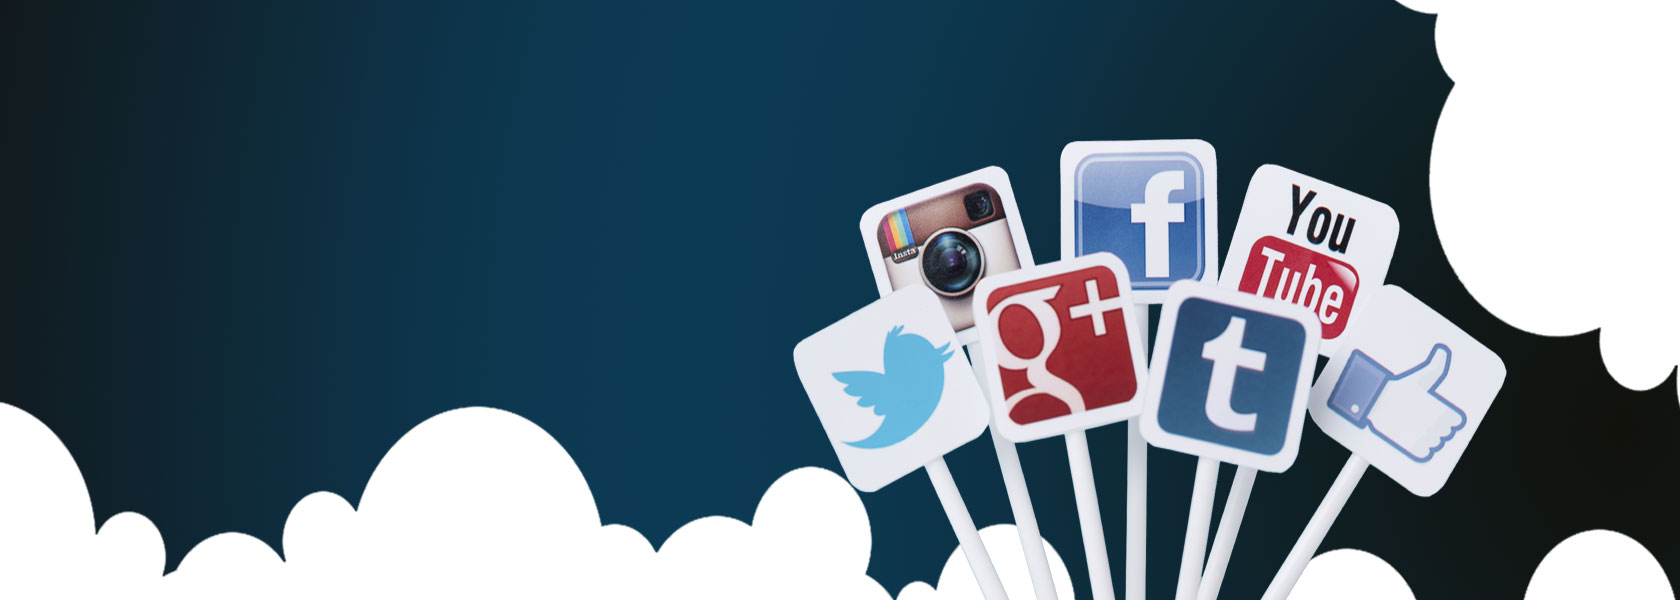 Affordable Social Media Marketing Services